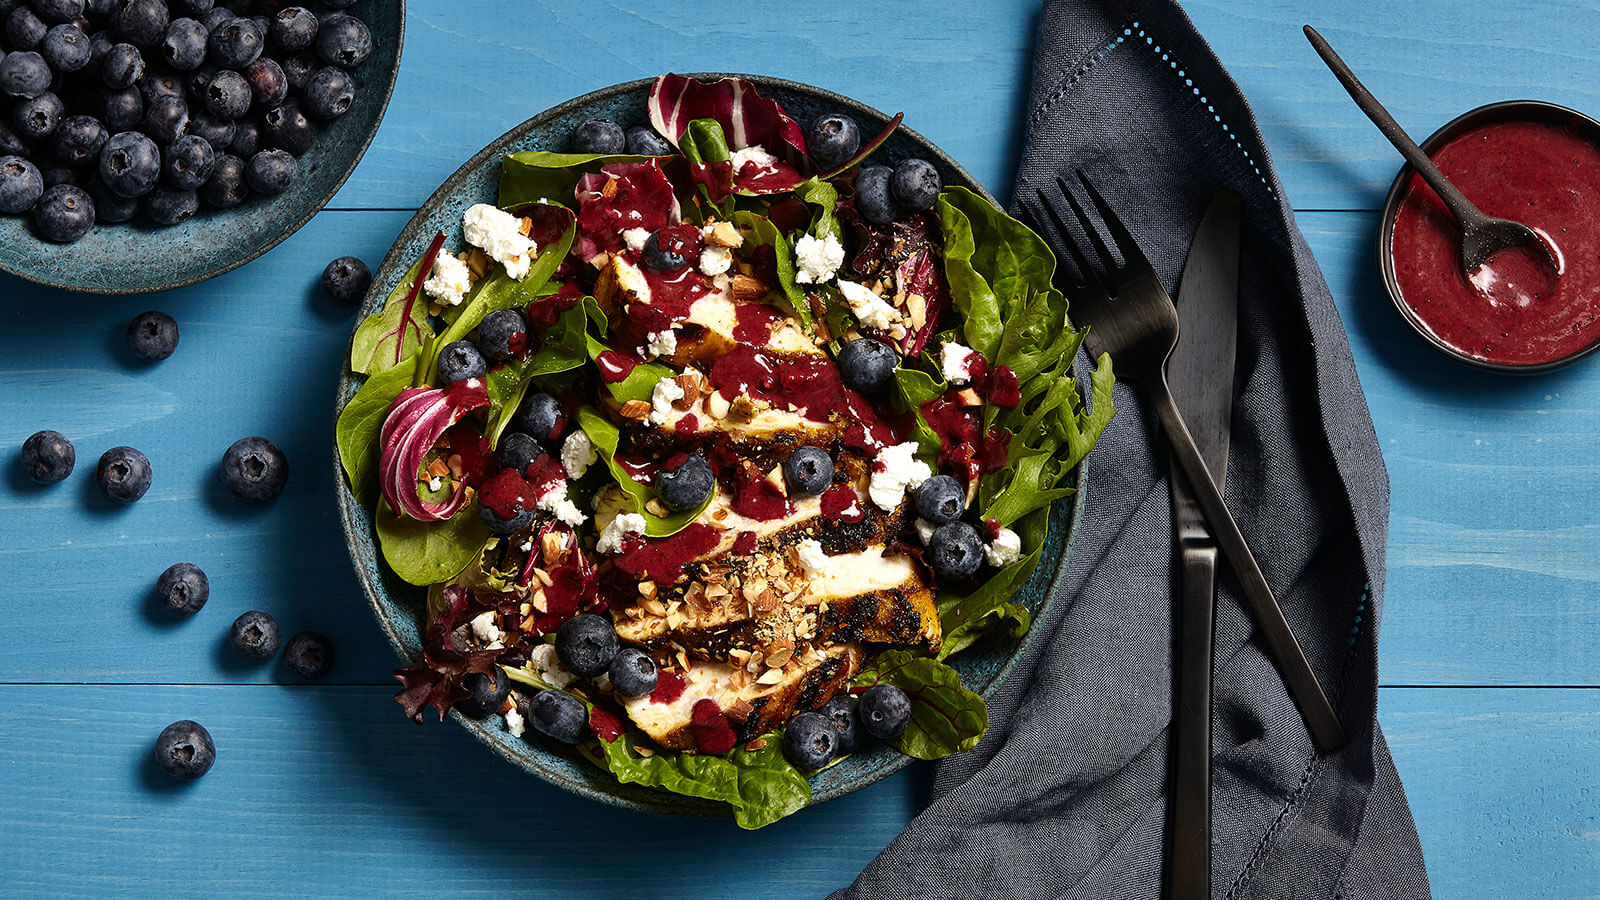 Summer Blueberry Salad with Grilled Chicken